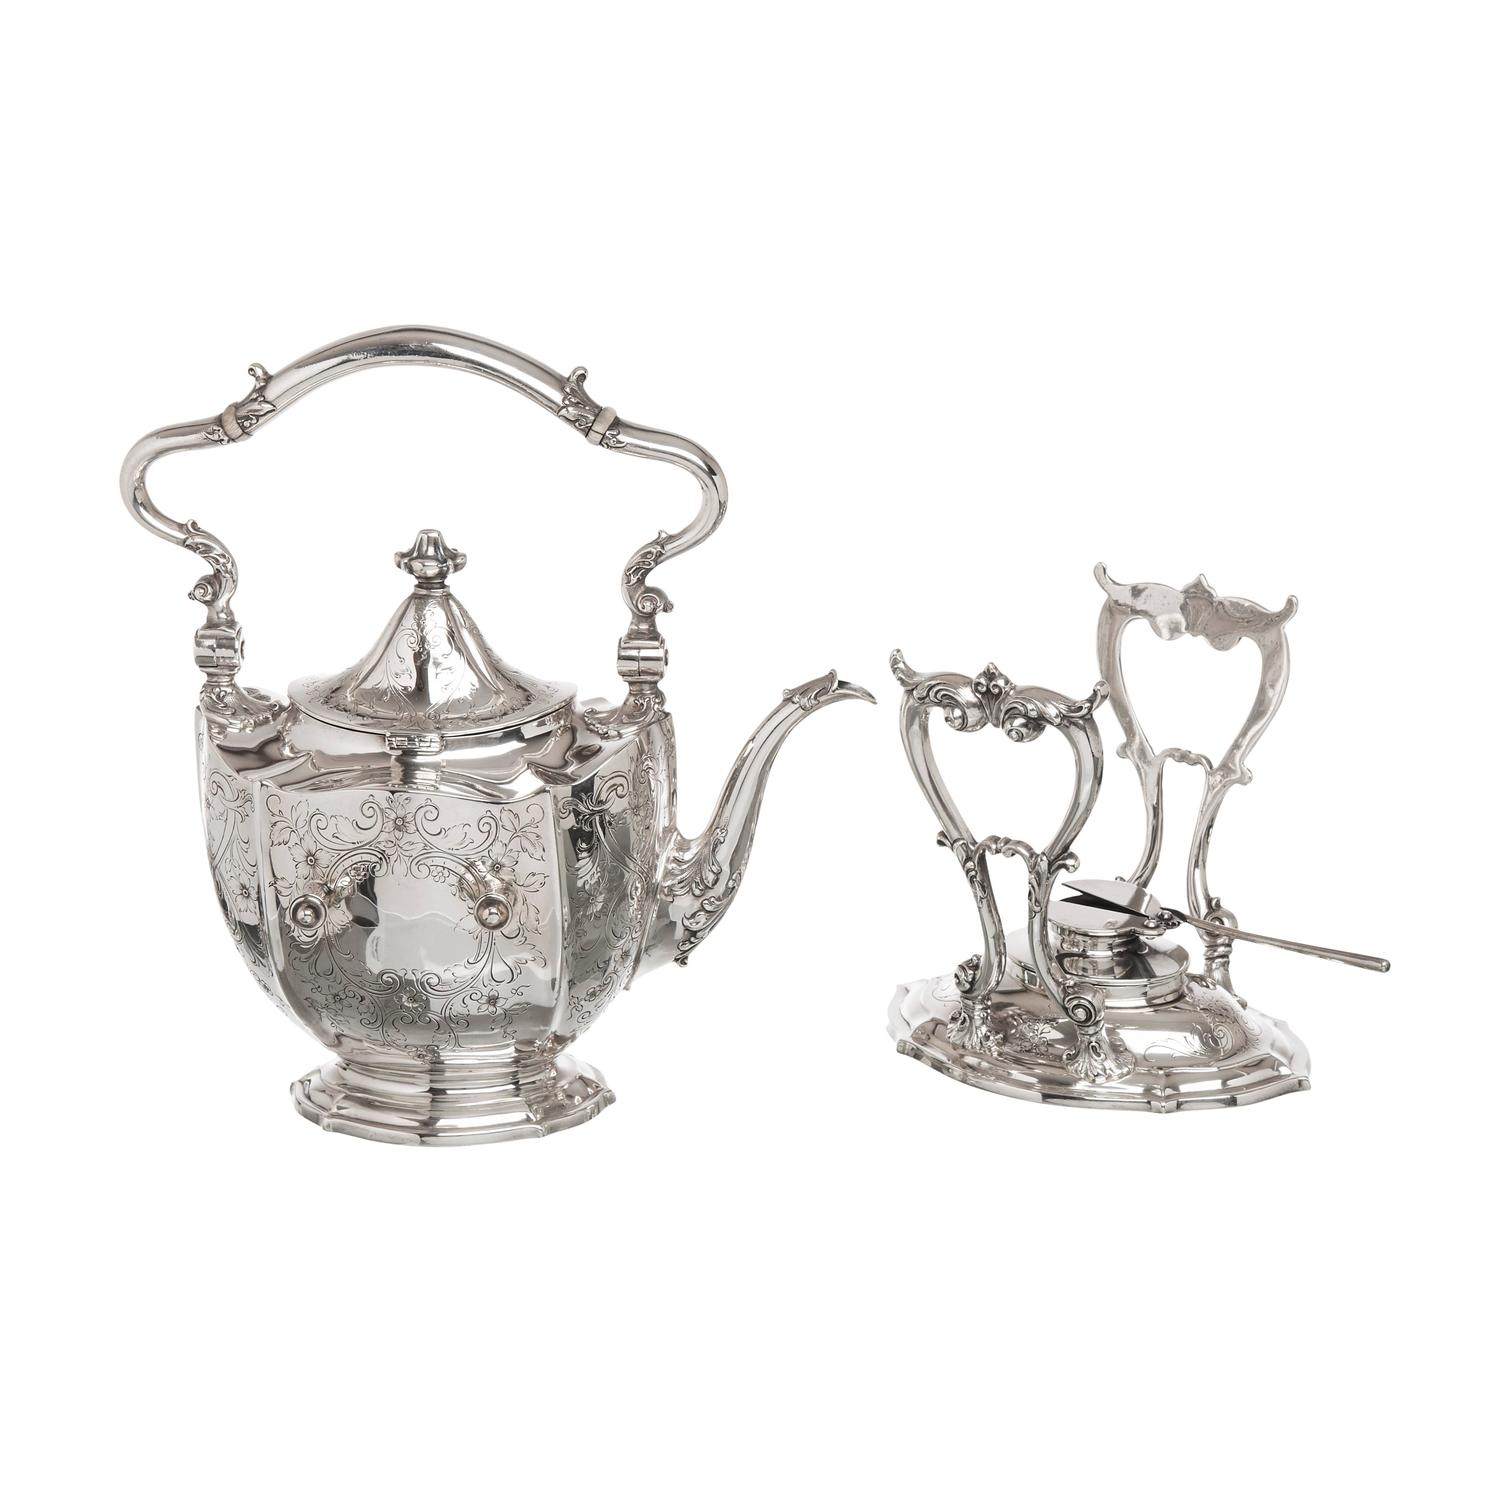 8 Piece Sterling Silver Tea Service Made For Hardy And